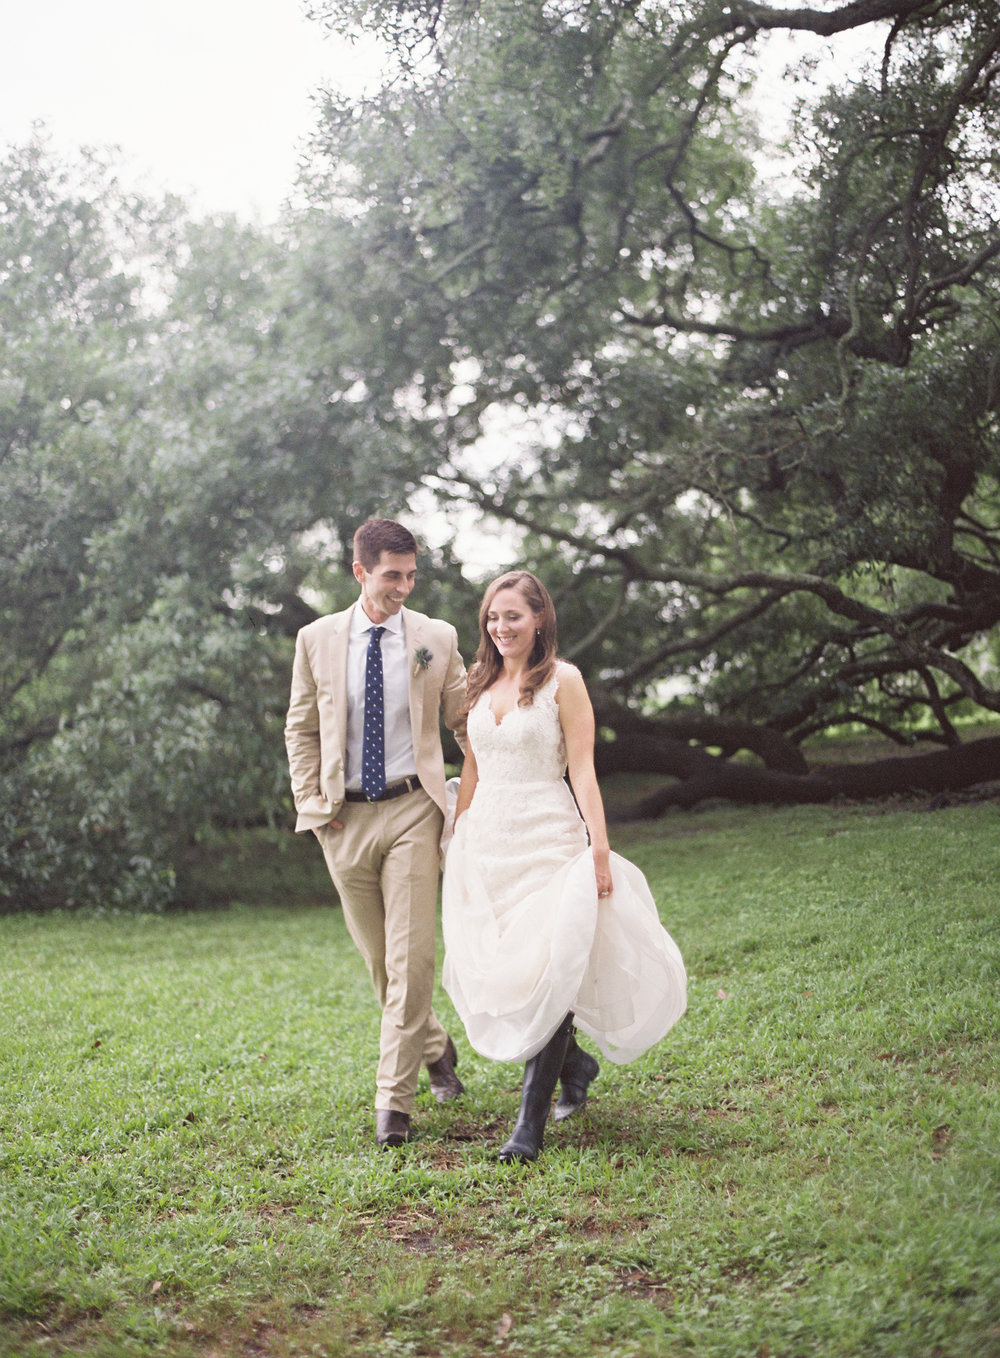 Sapphire Events | Catherine Guidry Photography | Wedding Planning | New Orleans Wedding | Stella Plantation Wedding | Blue and White Wedding | Classic Rainy Day Wedding | Outdoor Wedding | Tent Wedding | Hunter Boots | Blue and White Wedding Details | What to do when it rains on your wedding day